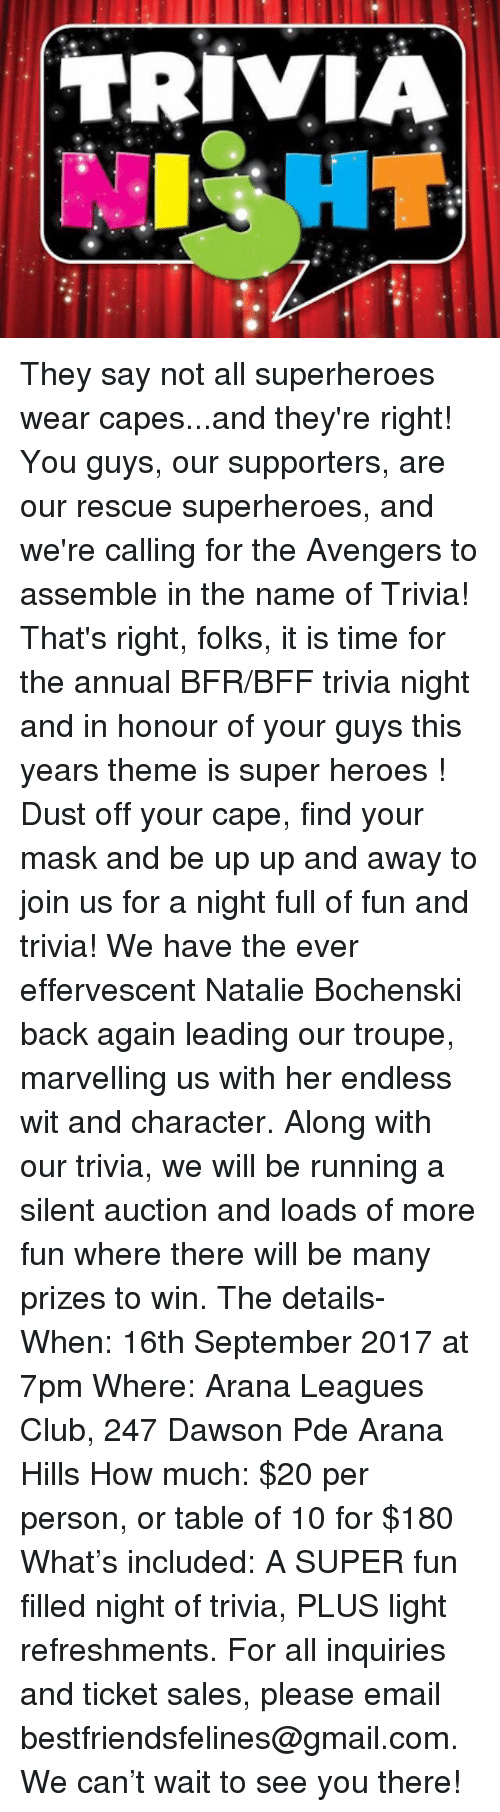 Caping: They say not all superheroes wear capes...and they're right! You guys, our supporters, are our rescue  superheroes, and we're calling for the Avengers to assemble in the name of Trivia! That's right, folks, it is time for the annual BFR/BFF trivia night and in honour of your guys this years theme is super heroes ! Dust off your cape, find your mask and be up up and away to join us for a night full of fun and trivia! We have the ever effervescent Natalie Bochenski  back again leading our troupe, marvelling us with her endless wit and character. Along with our trivia, we will be running a silent auction and loads of more fun where there will be many prizes to win.  The details- When: 16th September 2017 at 7pm Where: Arana Leagues Club, 247 Dawson Pde Arana Hills How much: $20 per person, or table of 10 for $180 What's included: A SUPER fun filled night of trivia, PLUS light refreshments.  For all inquiries and ticket sales, please email bestfriendsfelines@gmail.com. We can't wait to see you there!